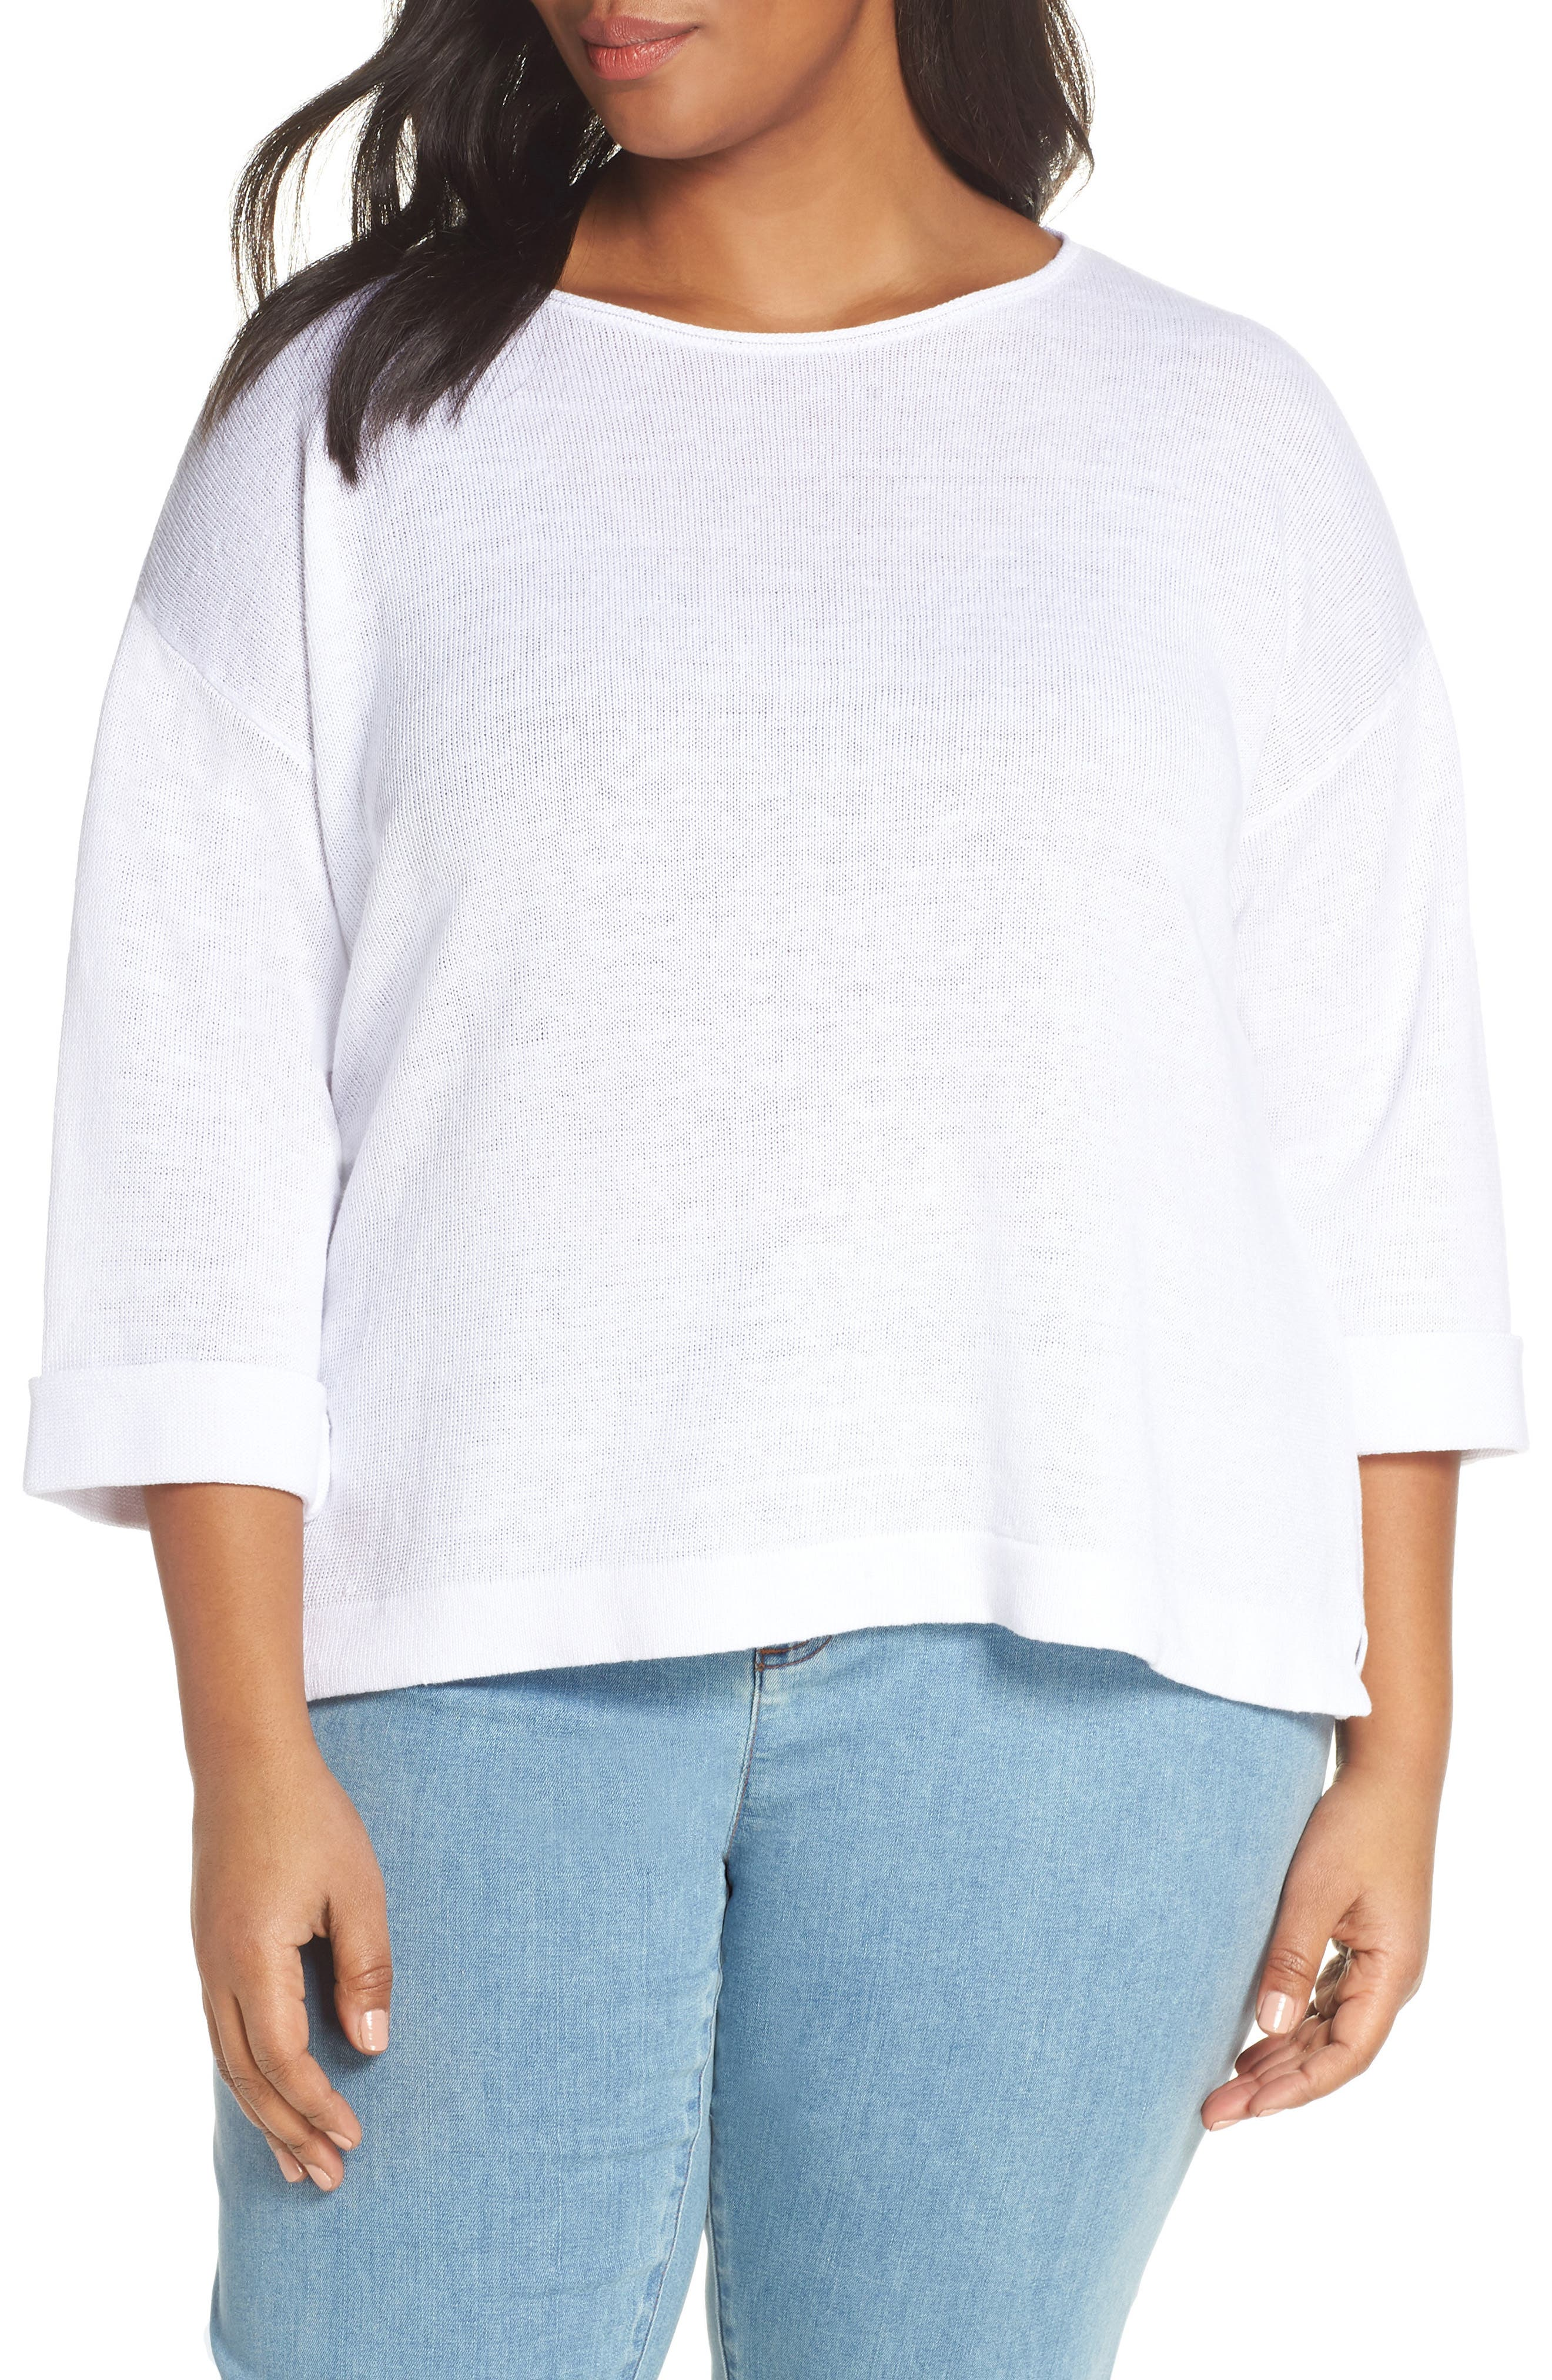 EILEEN FISHER, Round Neck Top, Main thumbnail 1, color, WHITE